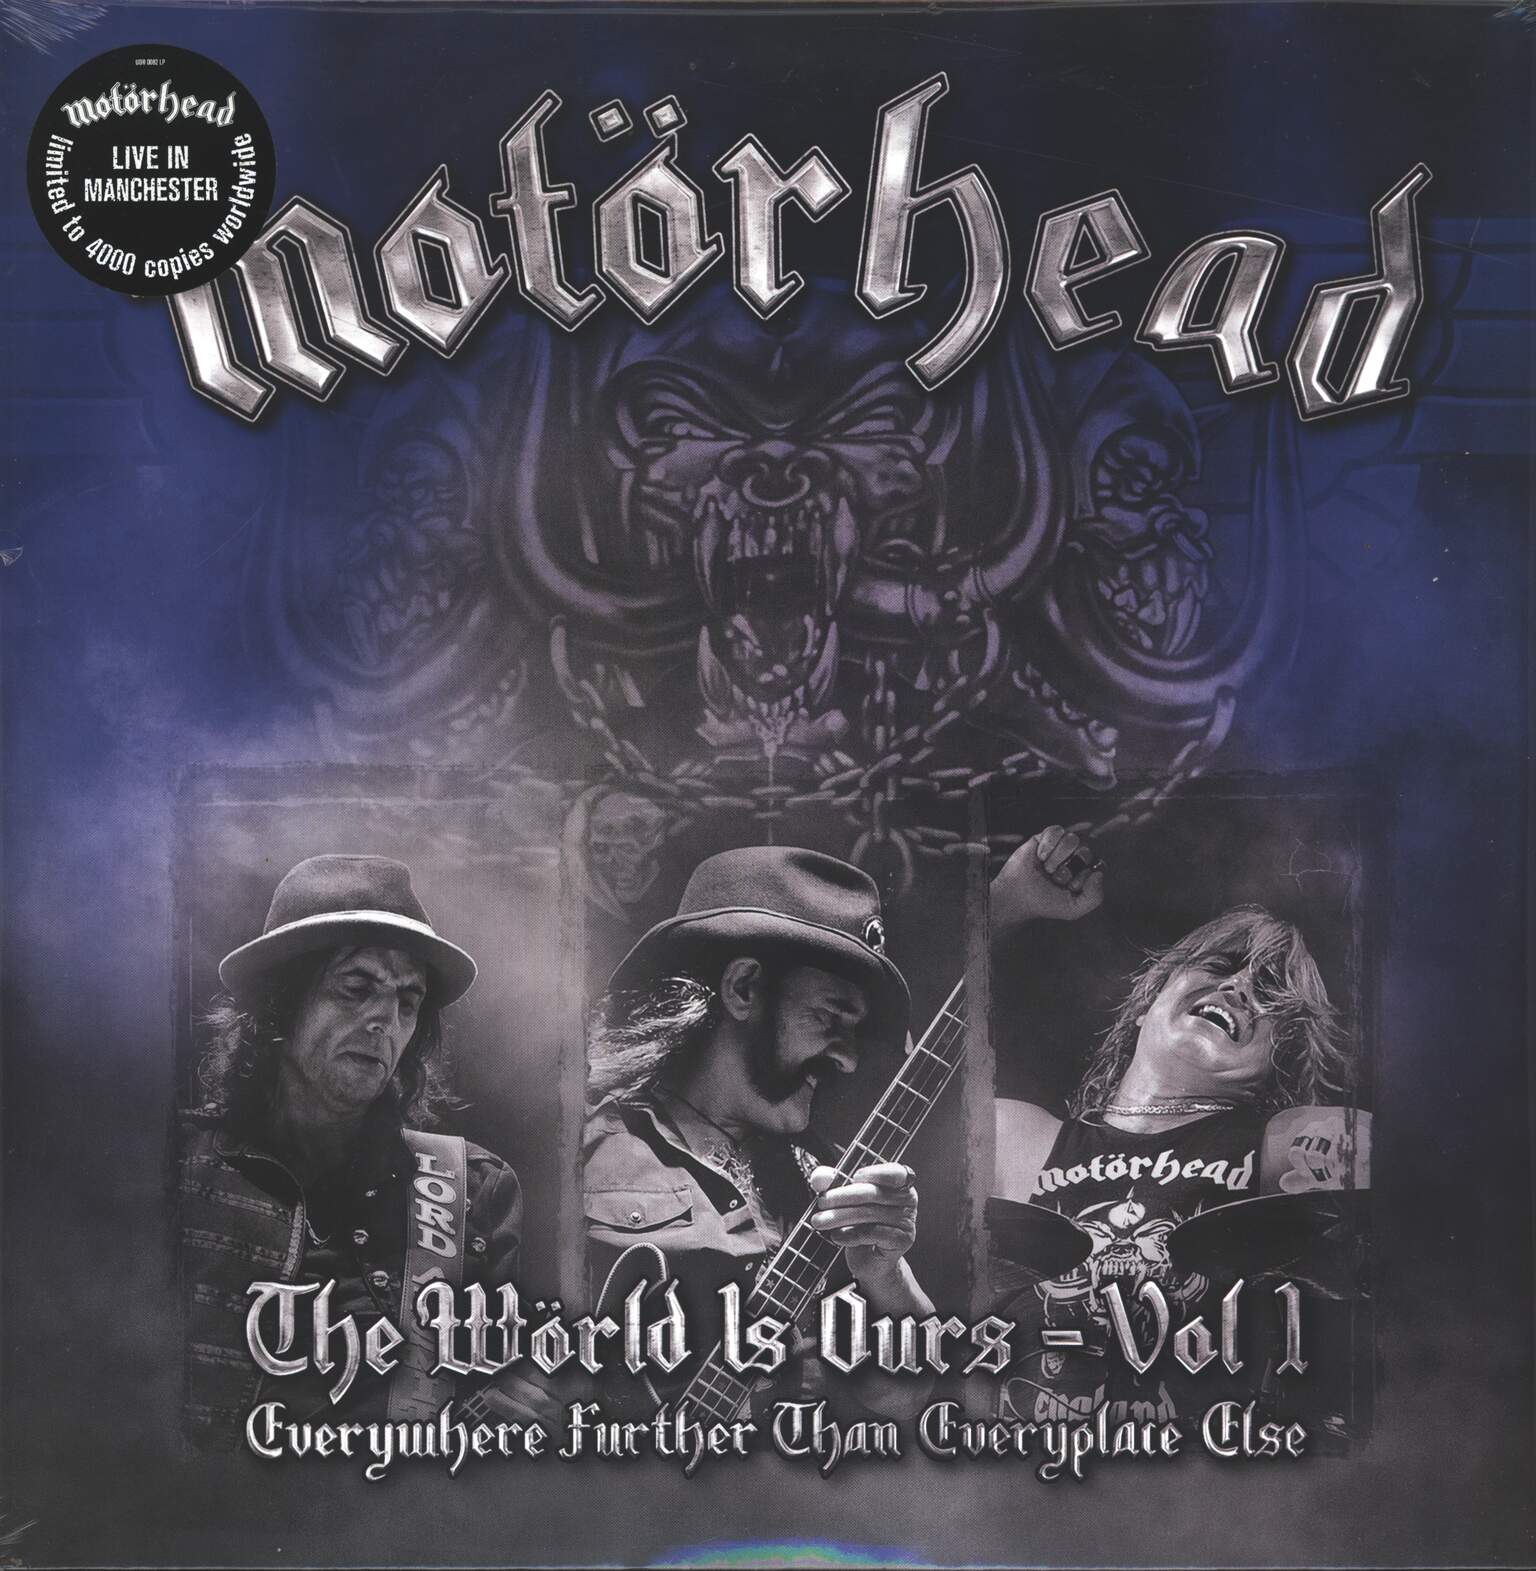 Motörhead: The Wörld Is Ours – Vol 1 – Everywhere Further Than Everyplace Else, LP (Vinyl)